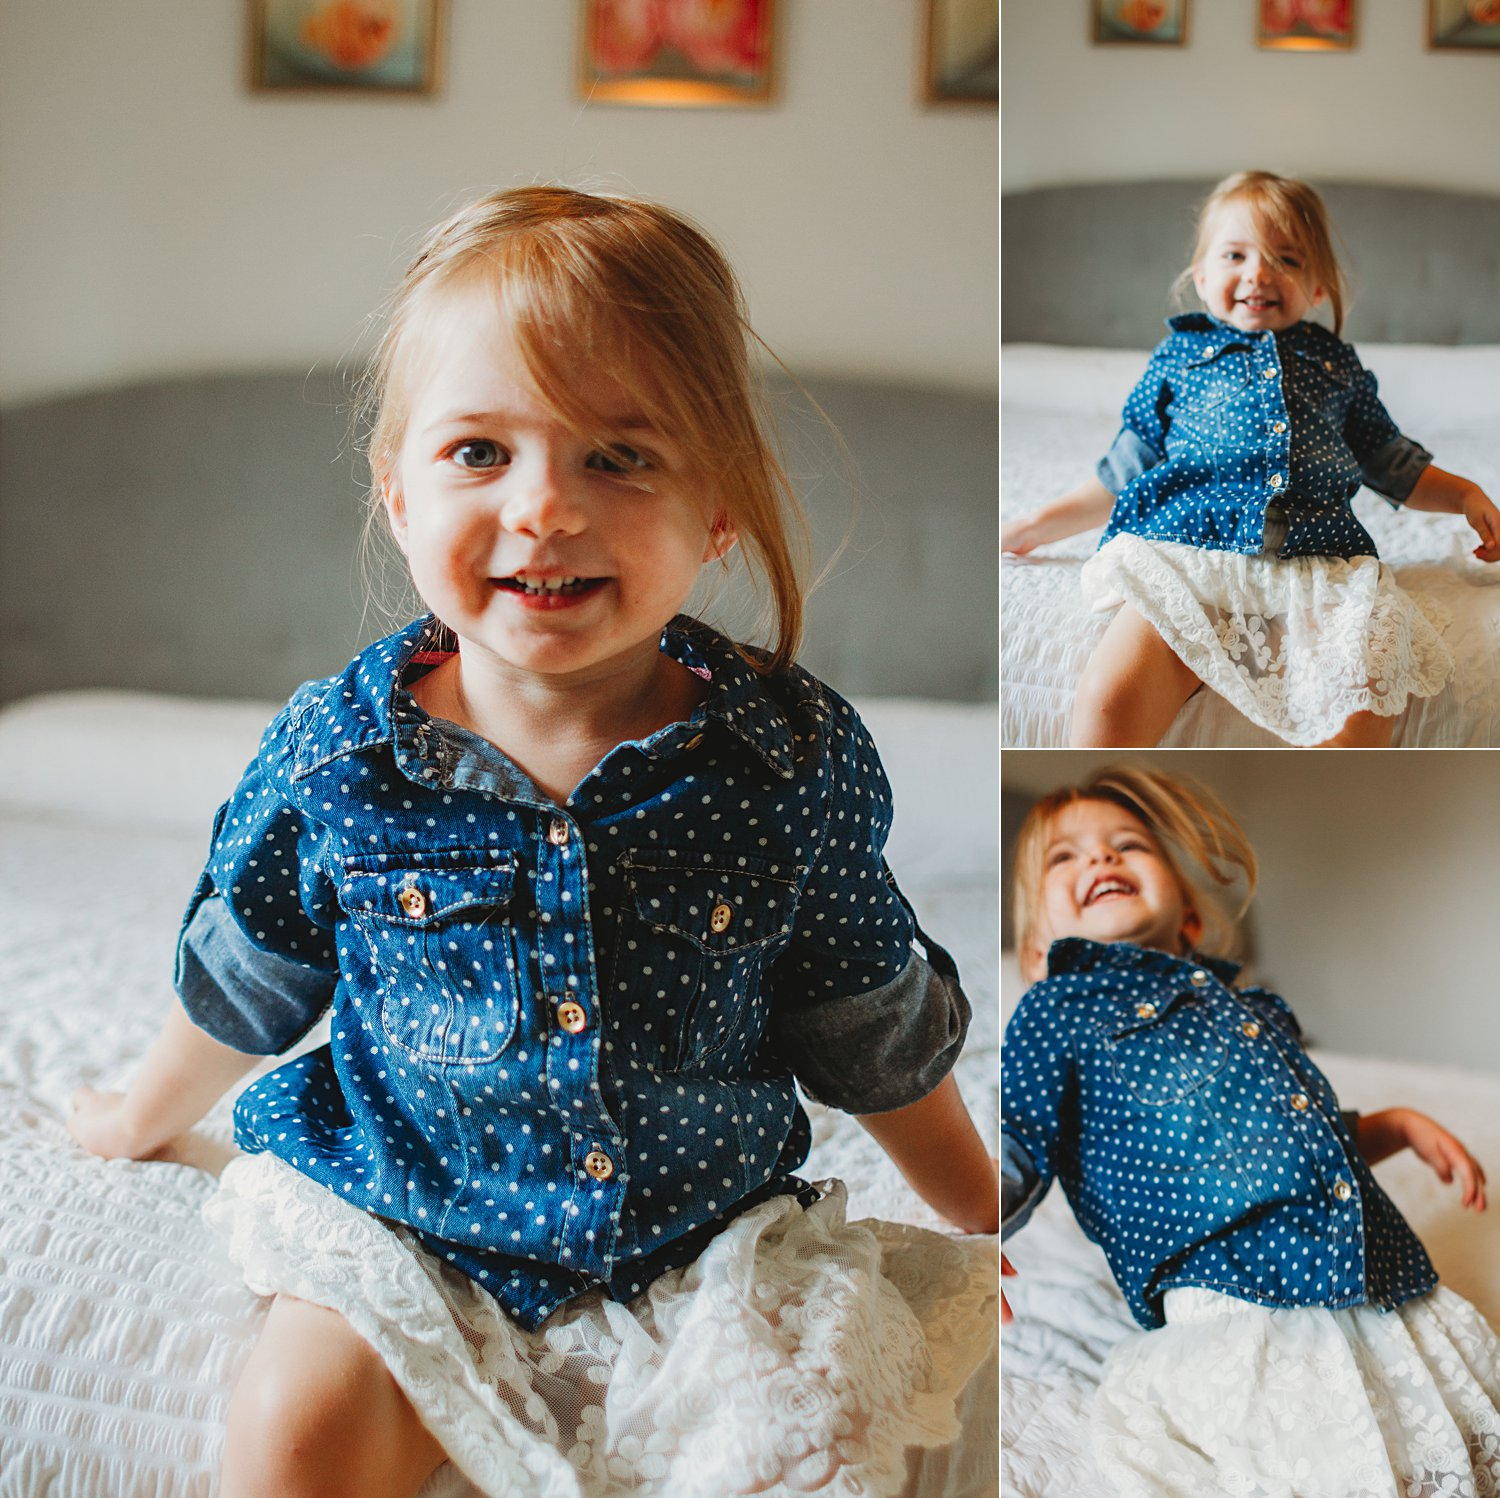 Lifestyle photos of young girl jumping on bed